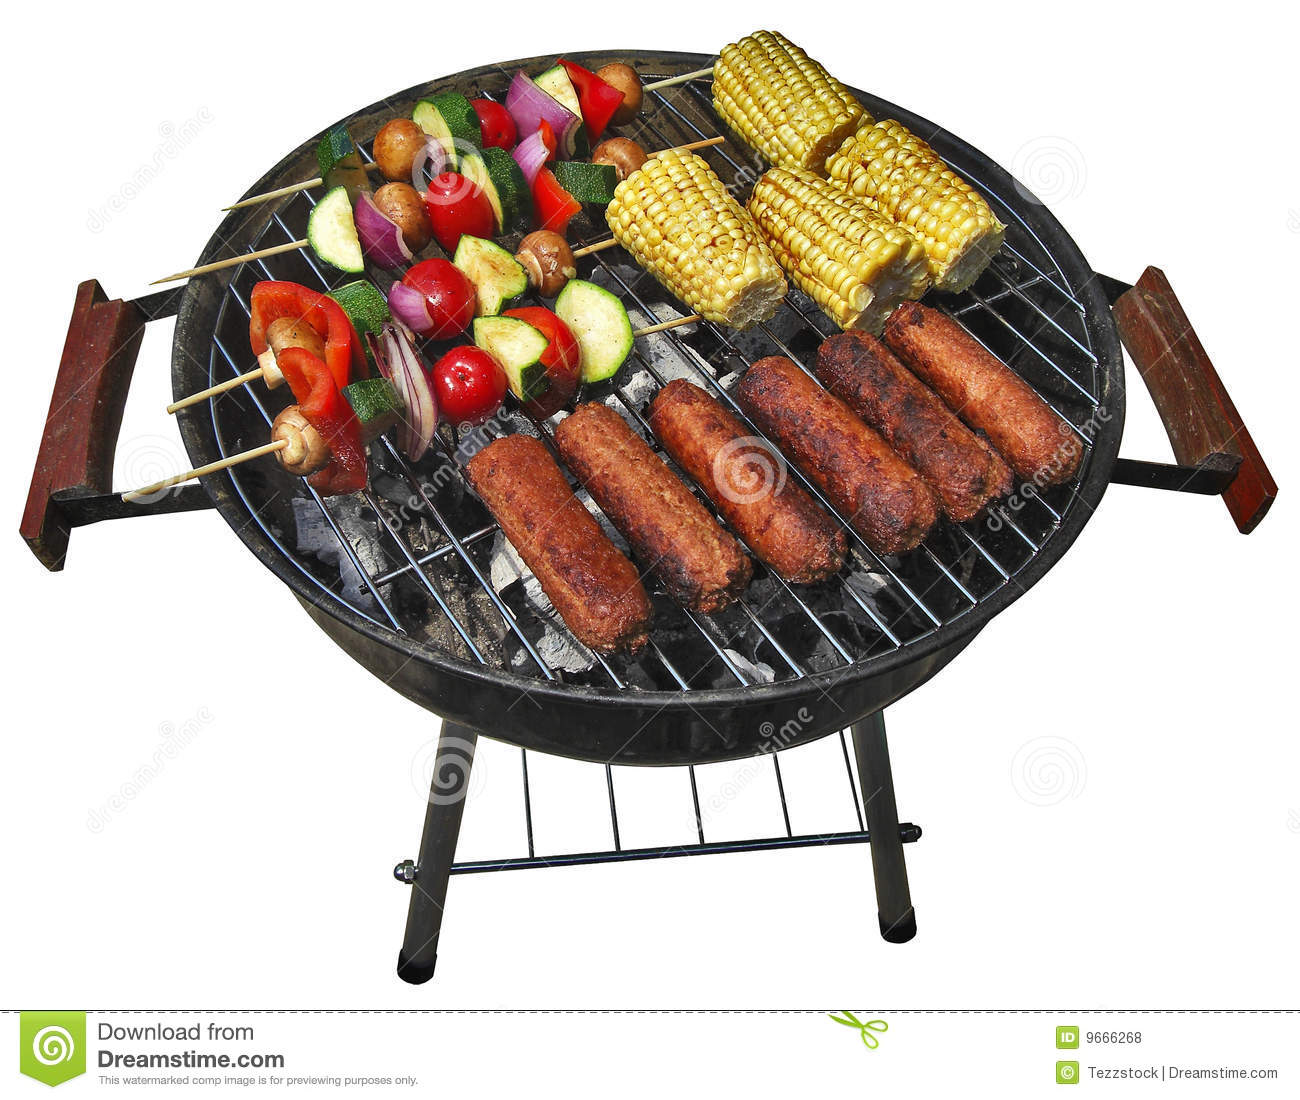 Summer Barbecue Royalty Free Stock Photos Image 9666268